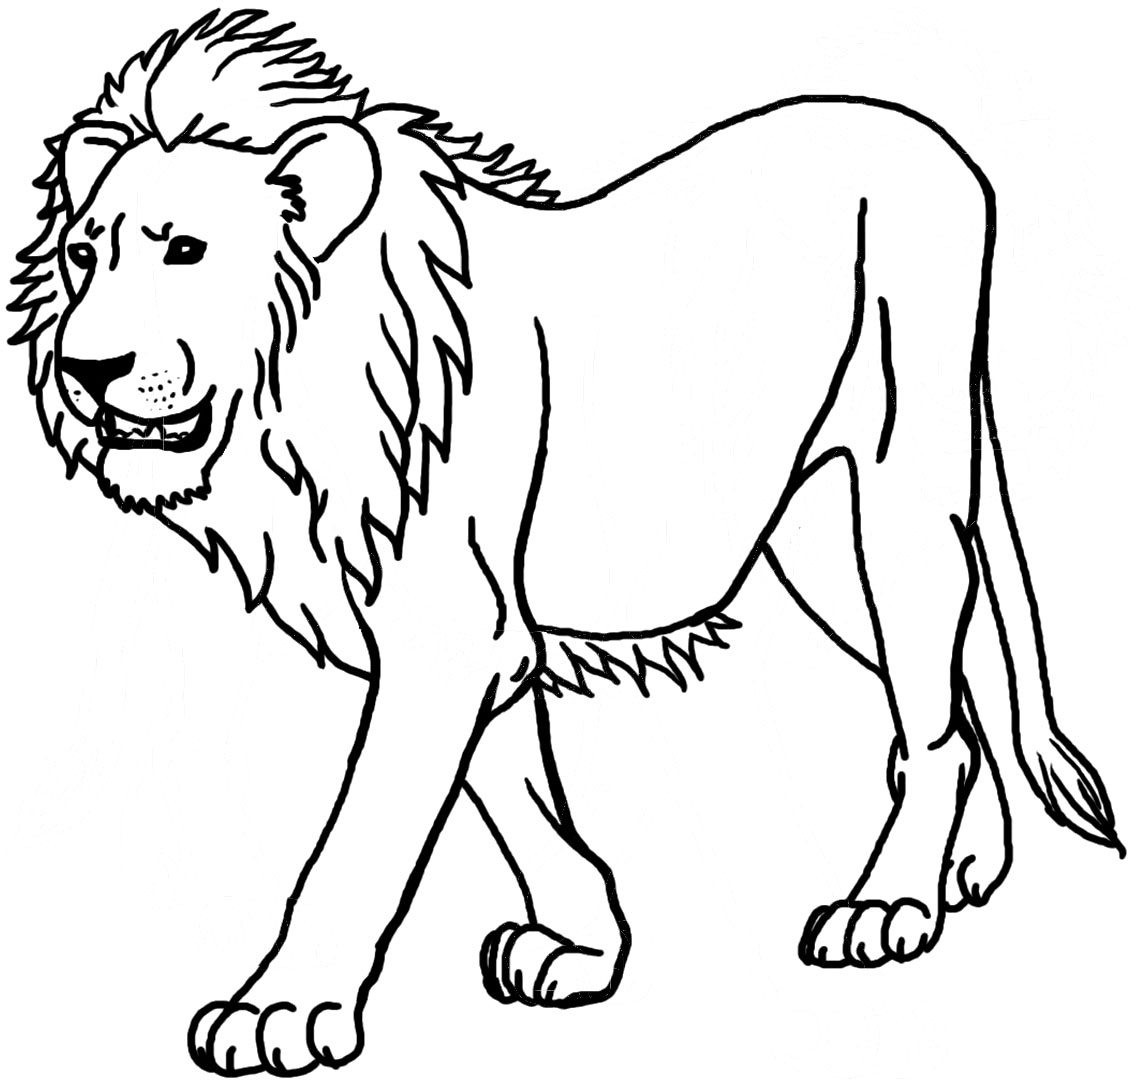 picture of lion coloring page lion to color for children lion kids coloring pages of lion page coloring picture